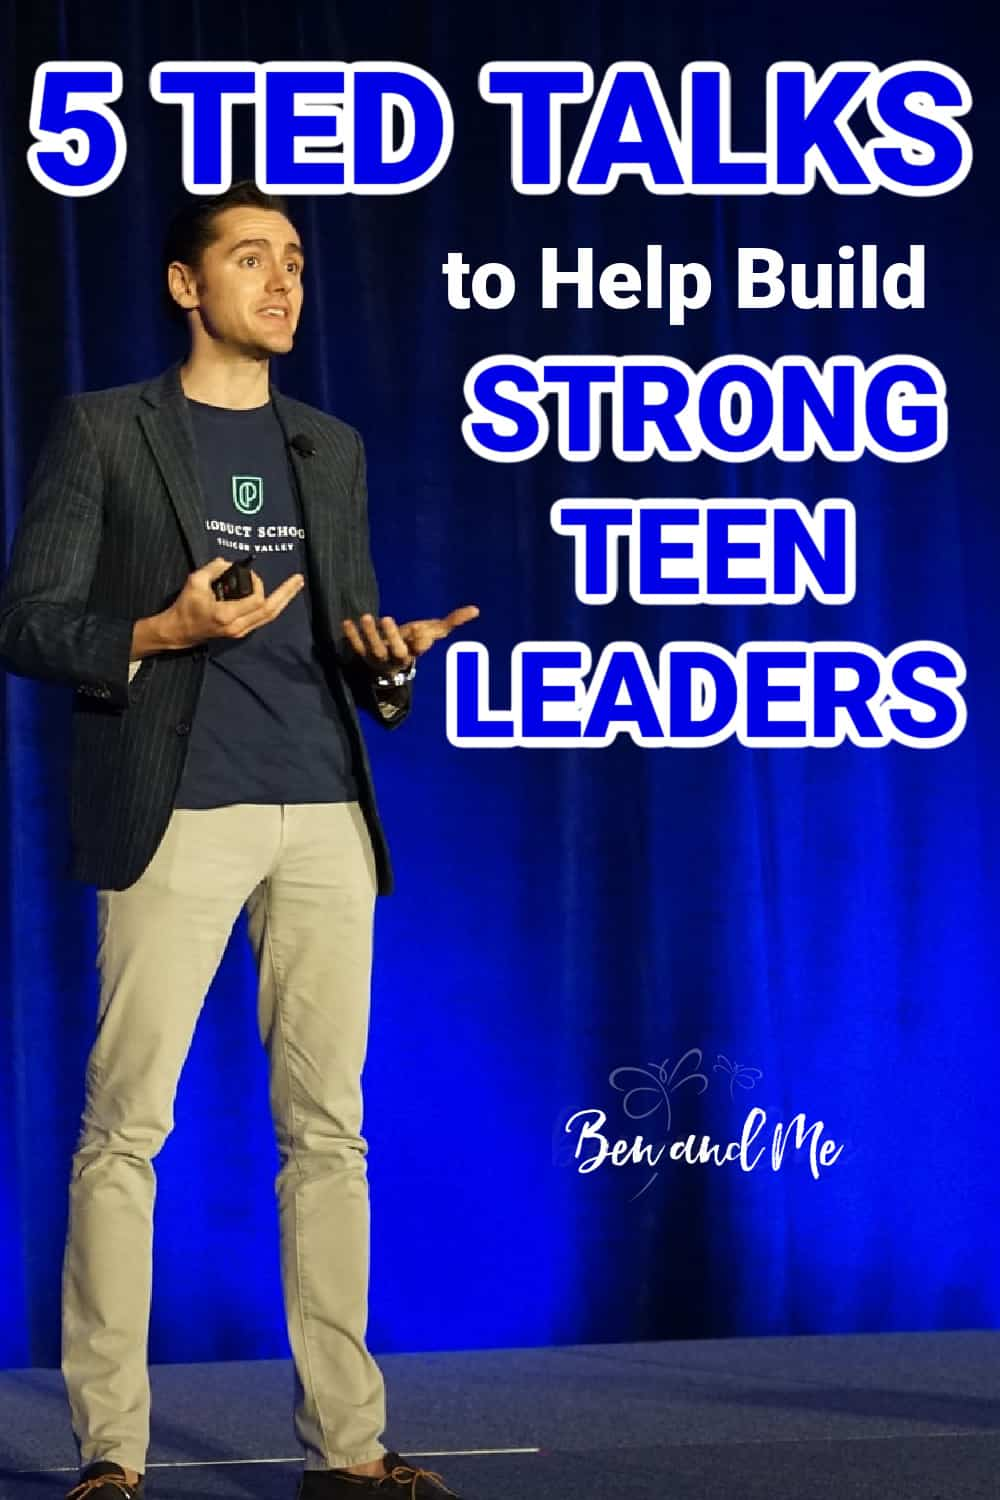 TED talks to build strong teen leaders